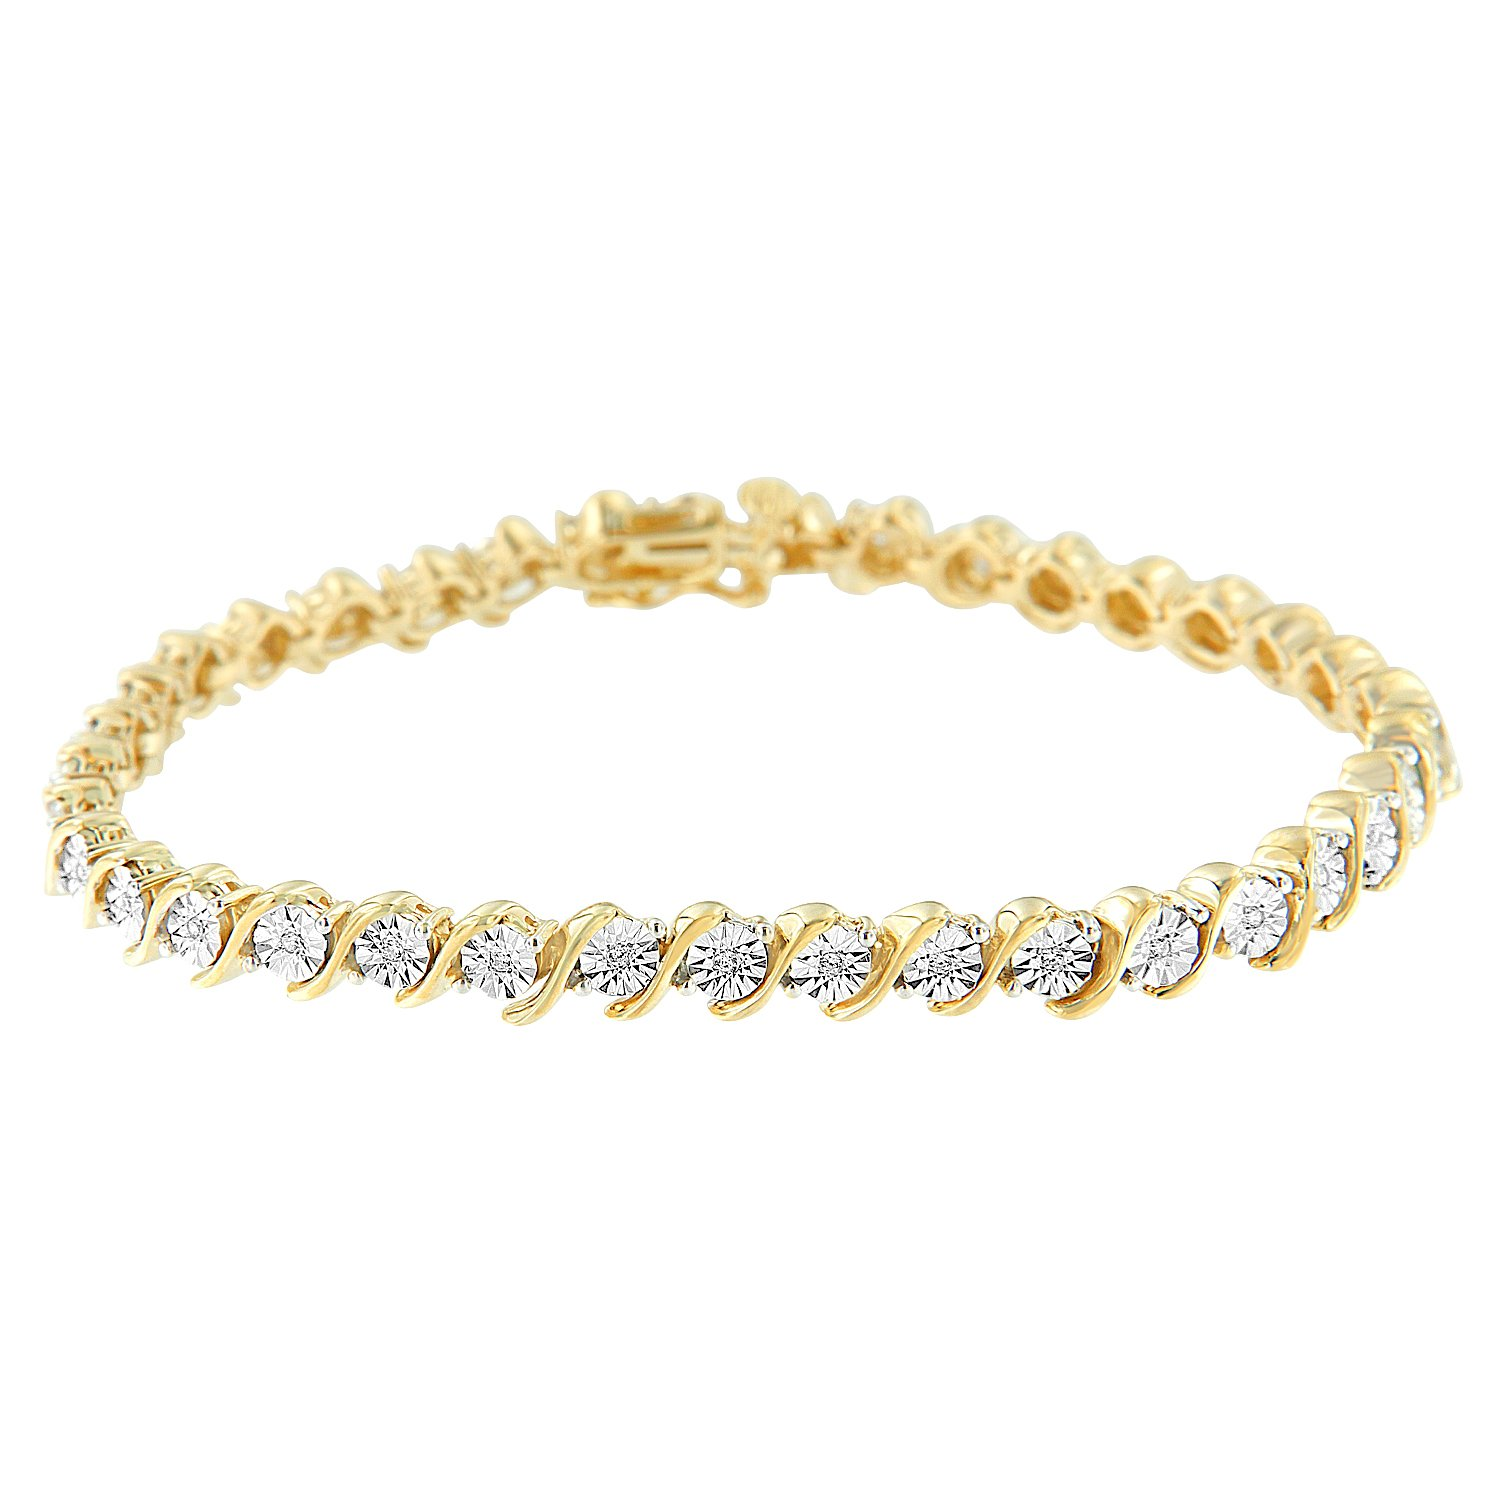 2 Micron 14K Yellow Gold Plated Sterling Silver Diamond S-Link Tennis Bracelet (0.10 cttw, I-J Color, I2-I3 Clarity)